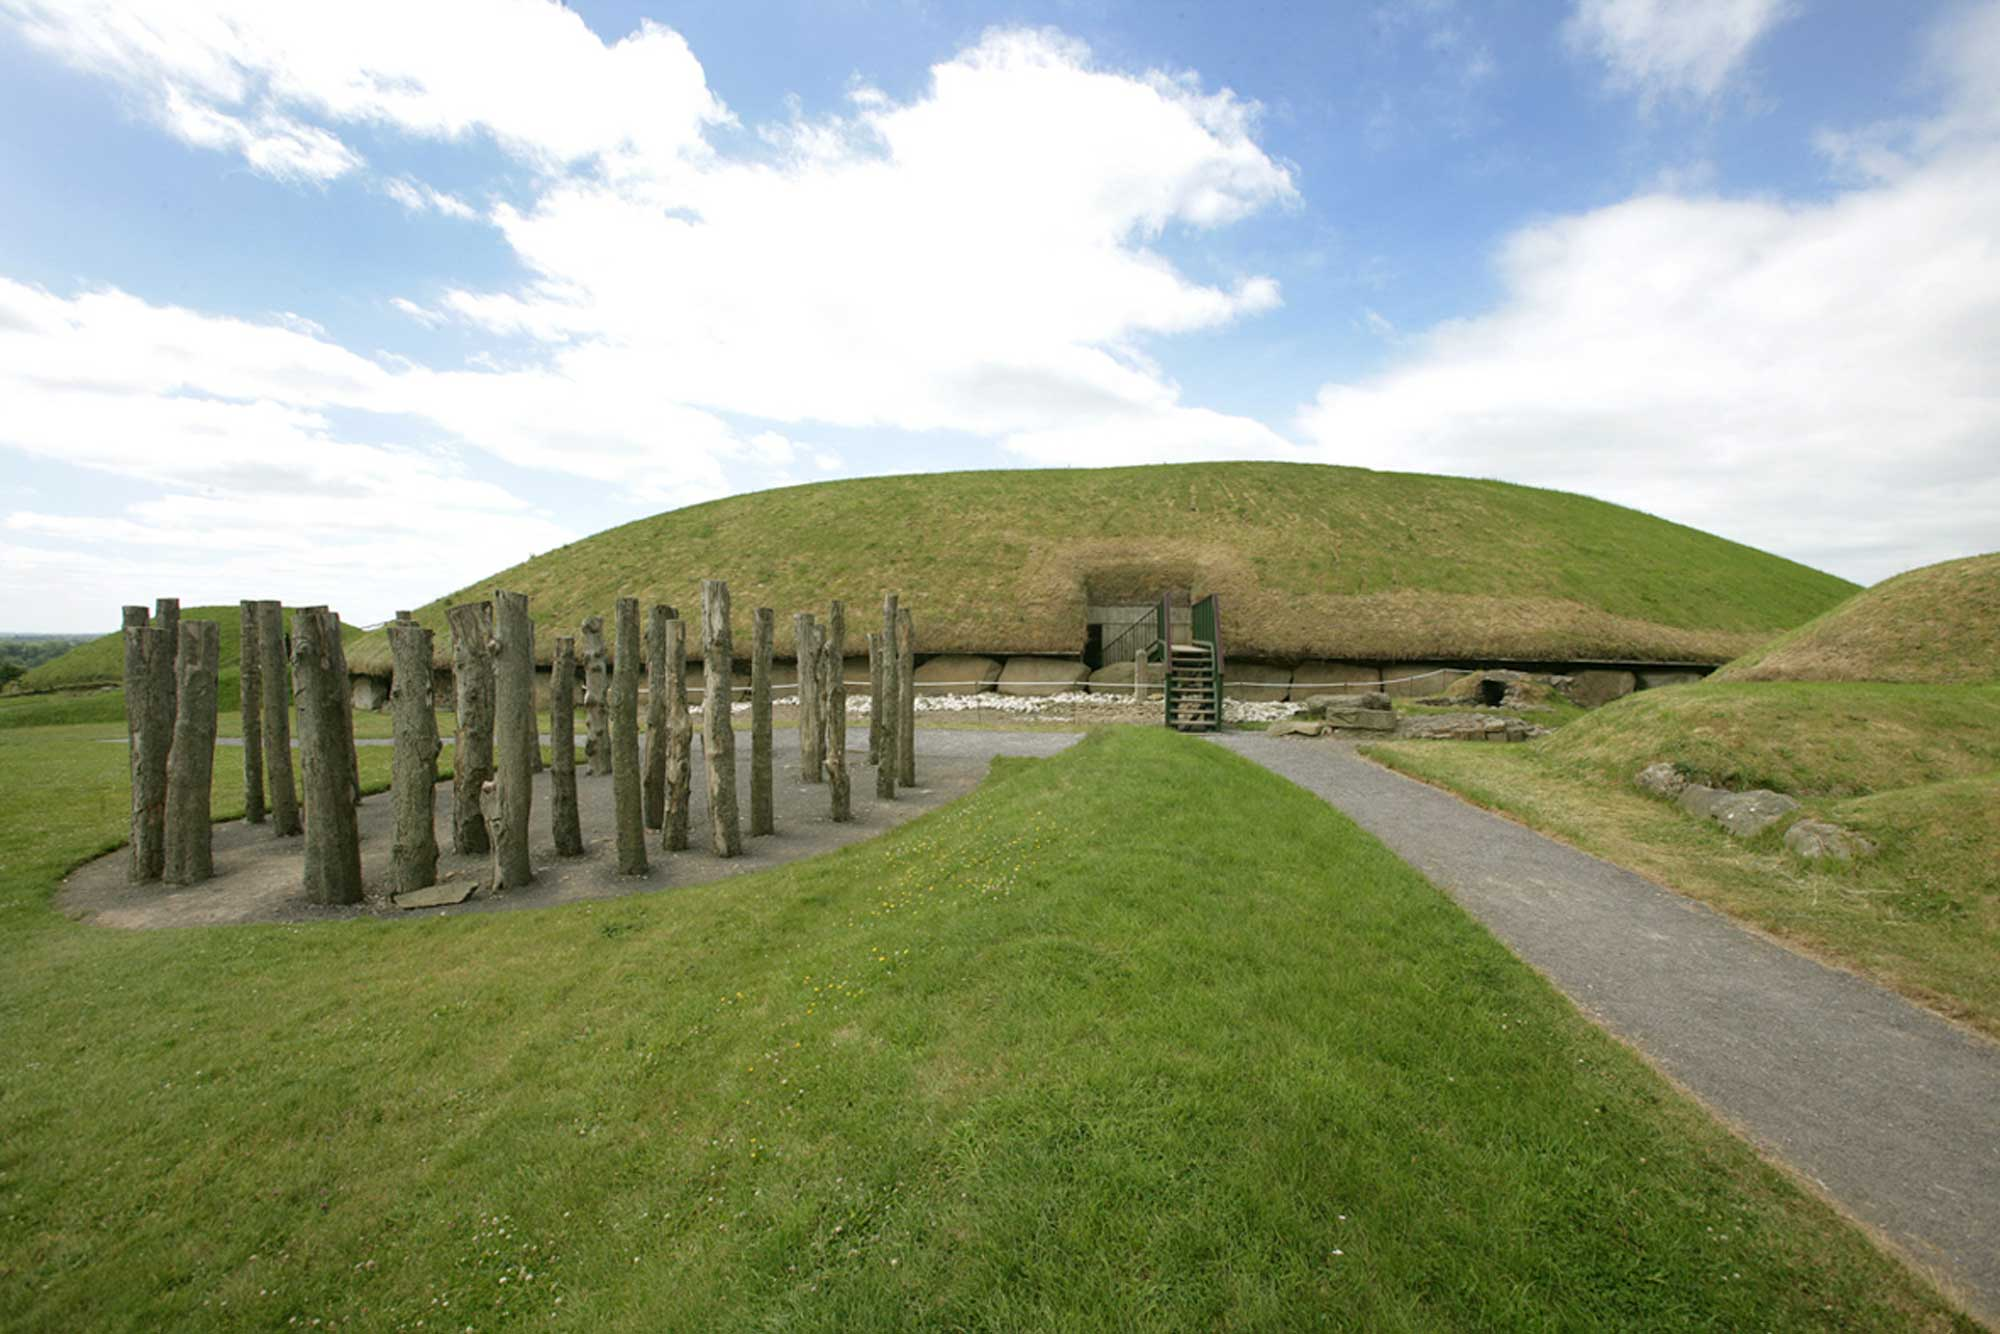 Eastern view of Knowth Mound with reconstructed timber circle.